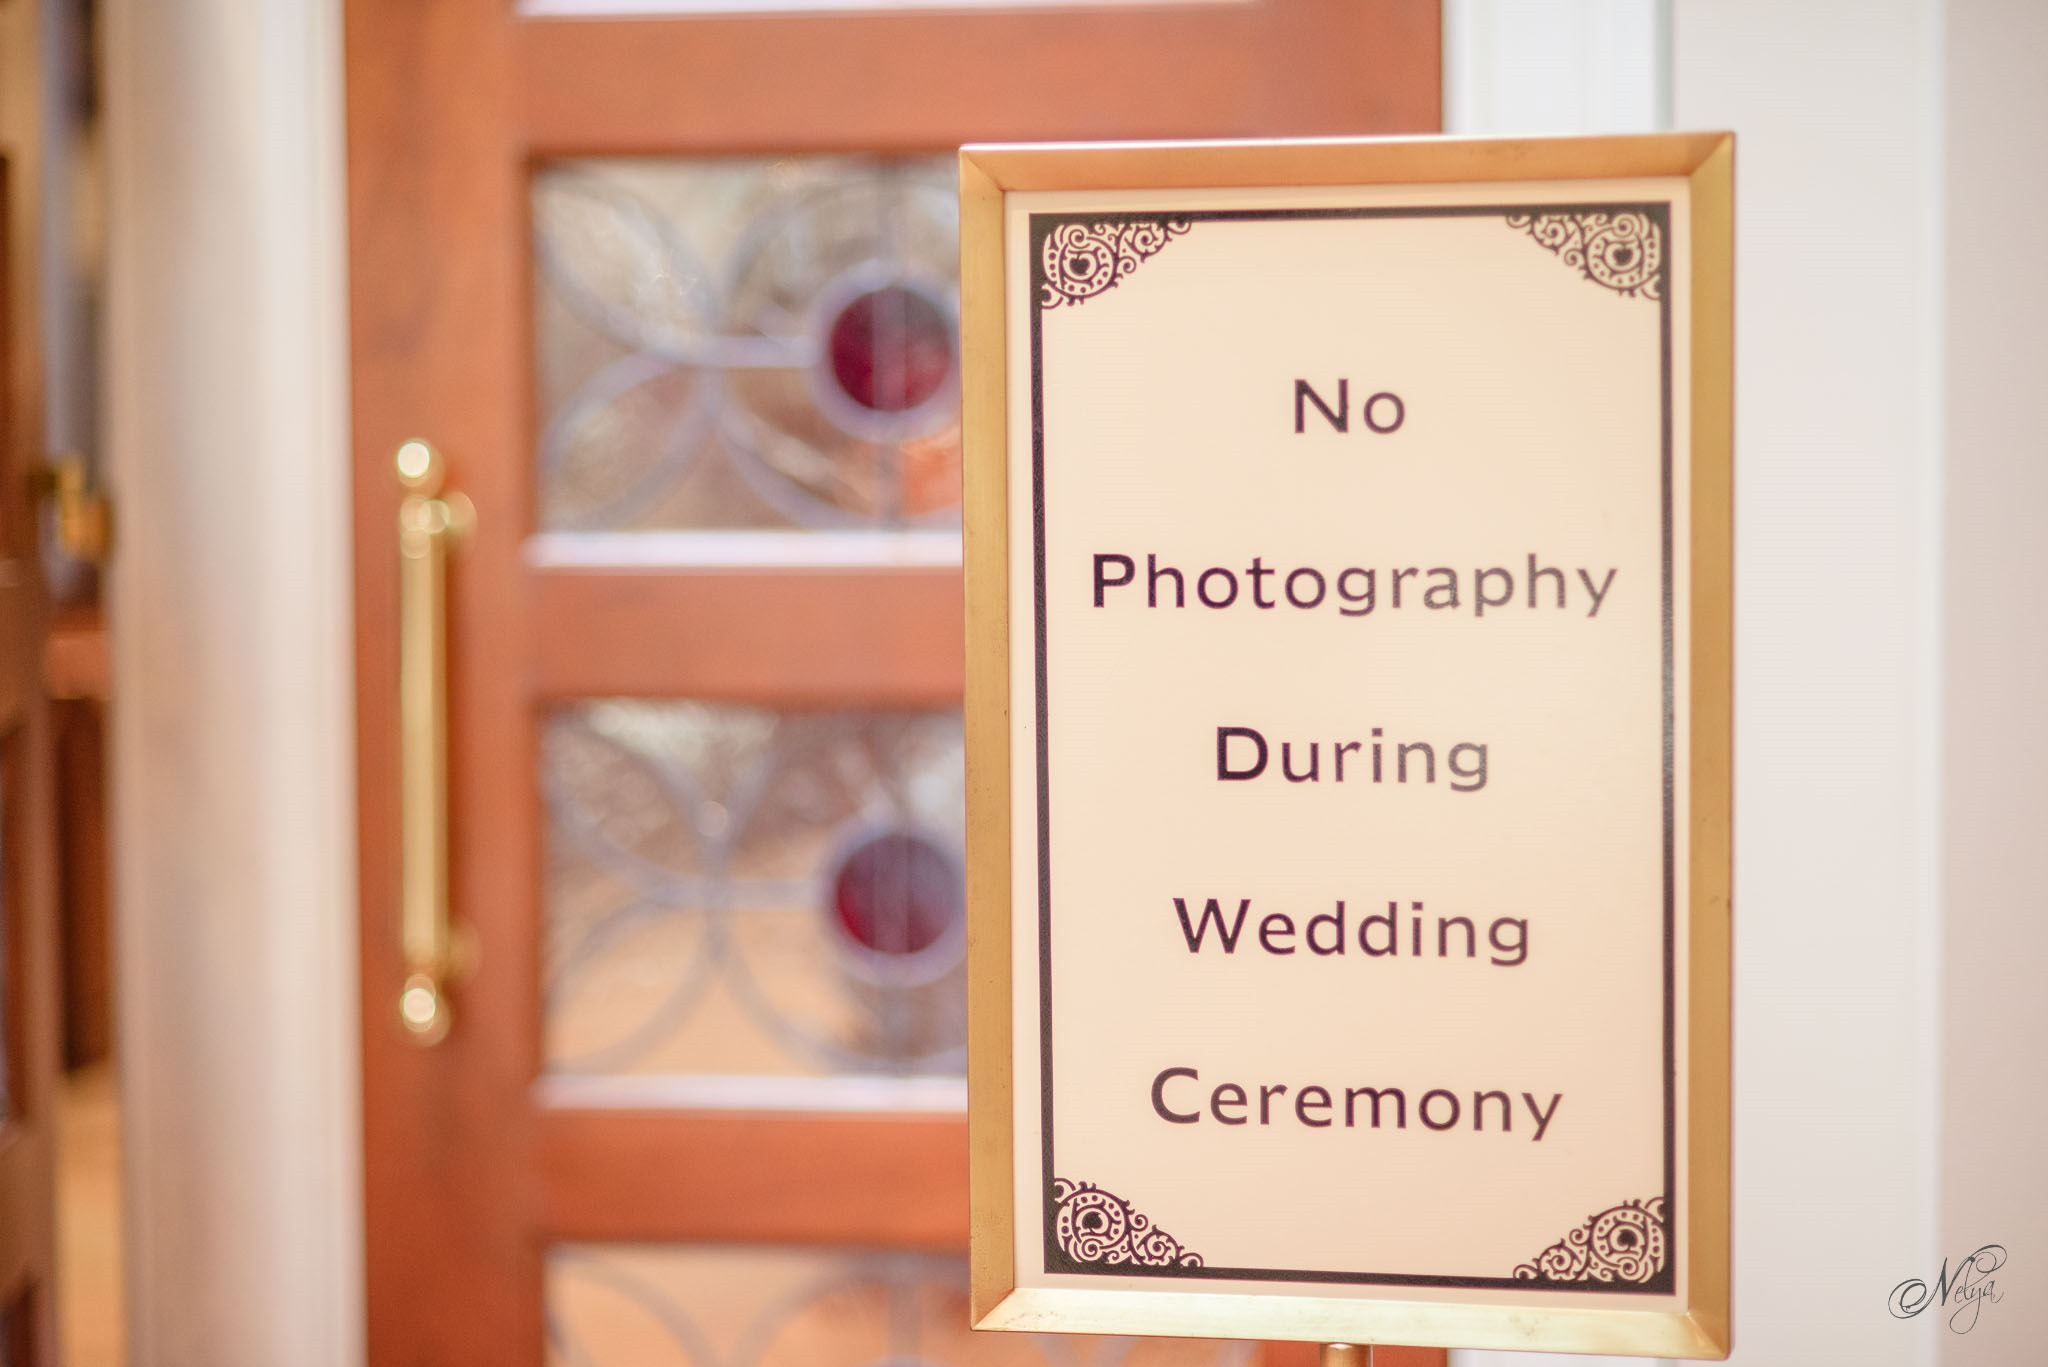 Knoxville wedding planning tips-8796-2